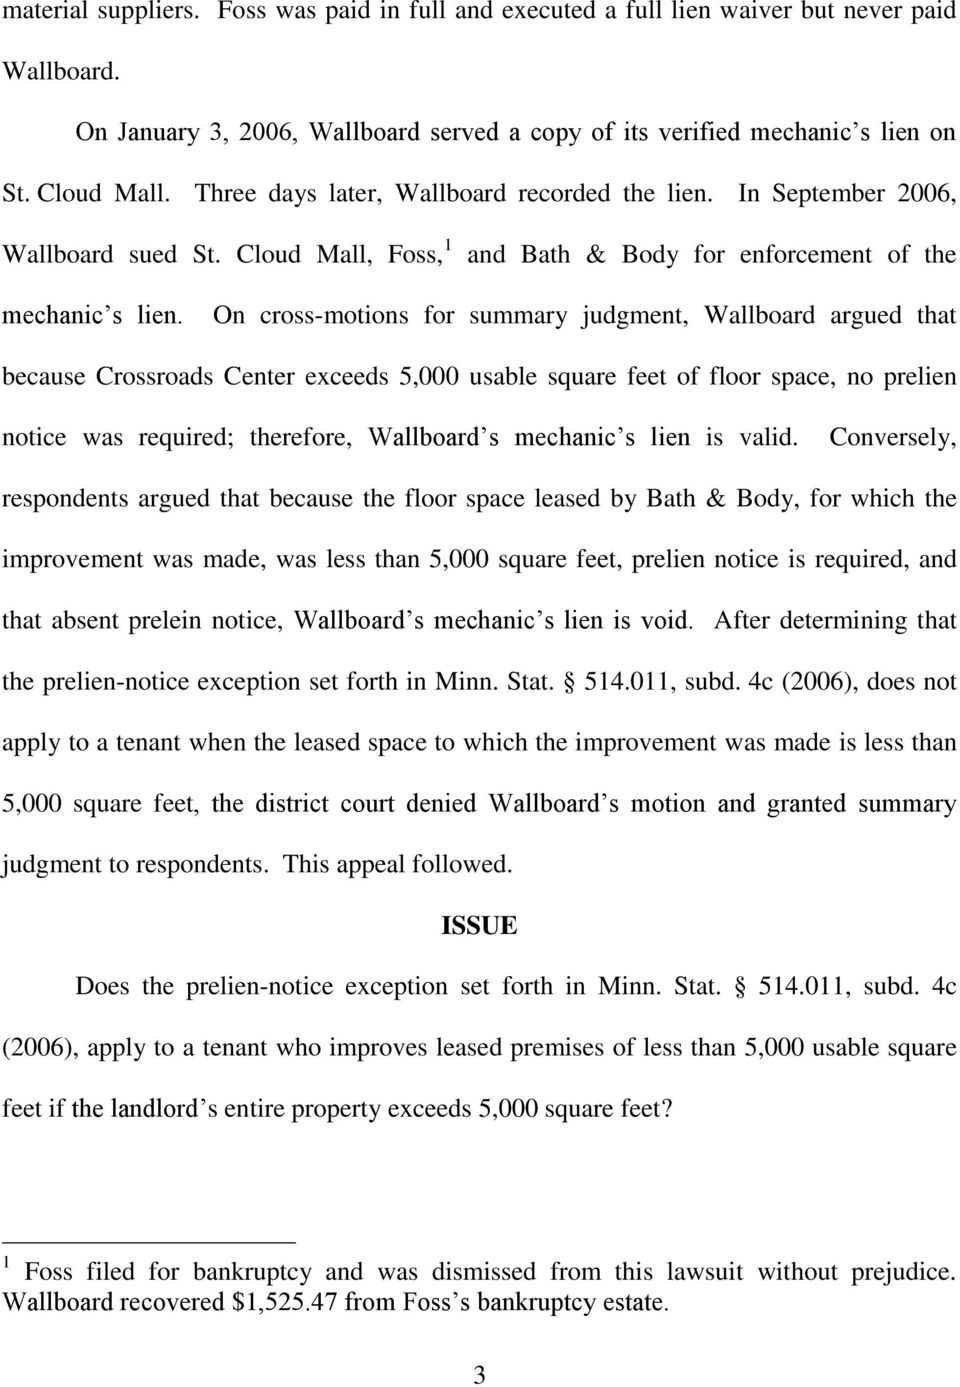 On cross-motions for summary judgment, Wallboard argued that because Crossroads Center exceeds 5,000 usable square feet of floor space, no prelien notice was required; therefore, Wallboard s mechanic